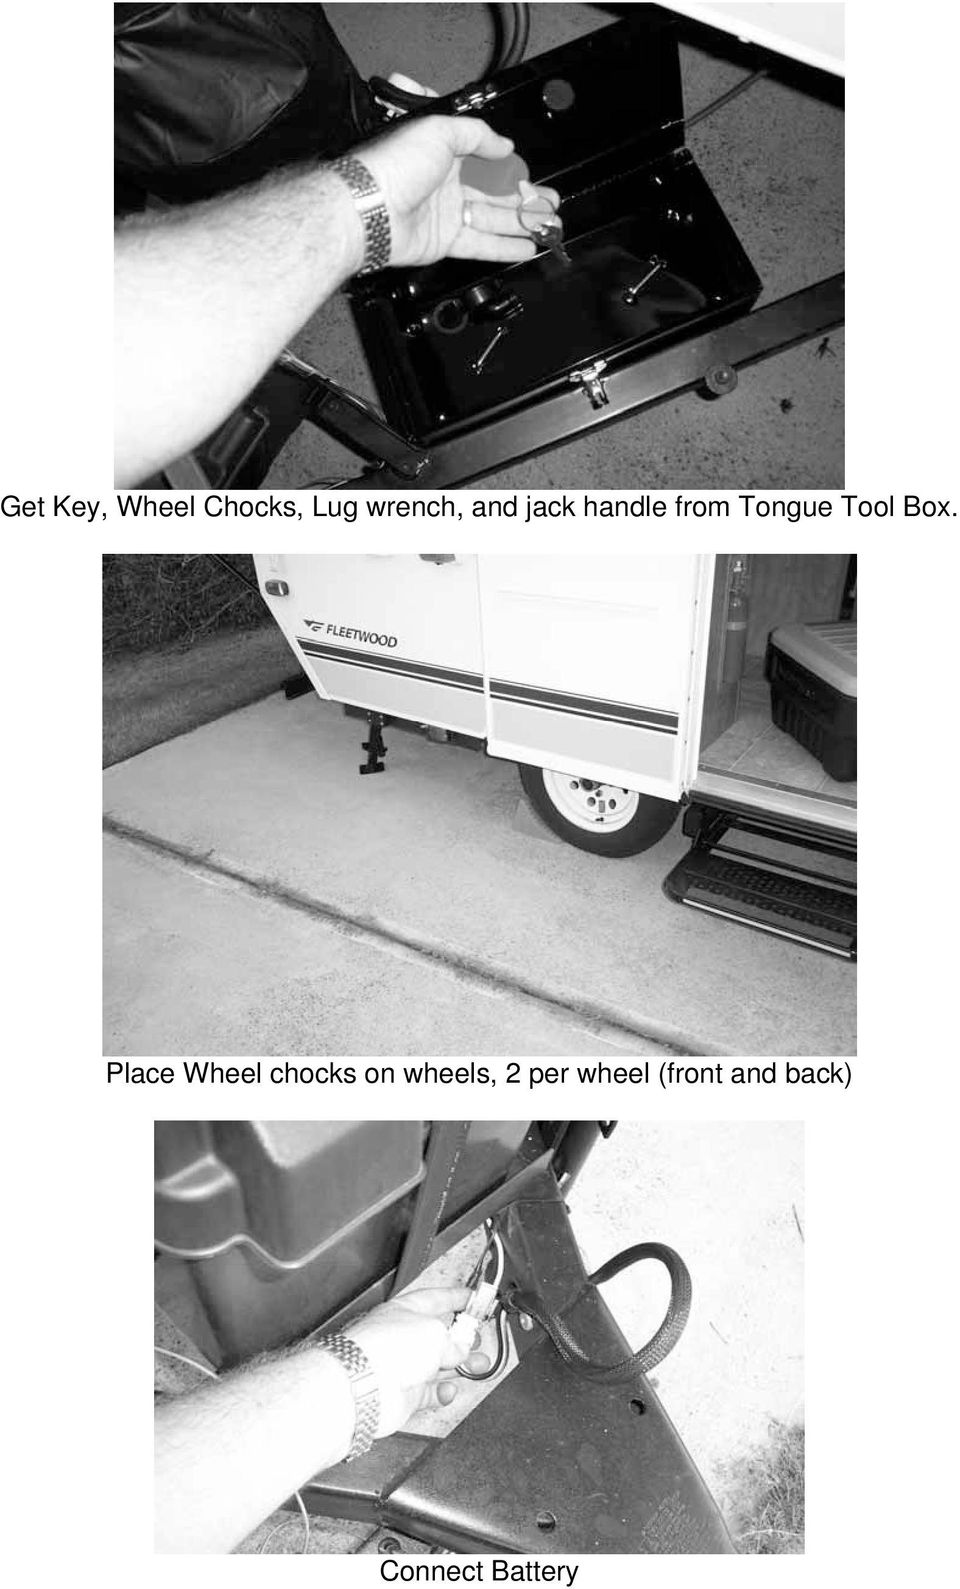 Place Wheel chocks on wheels, 2 per